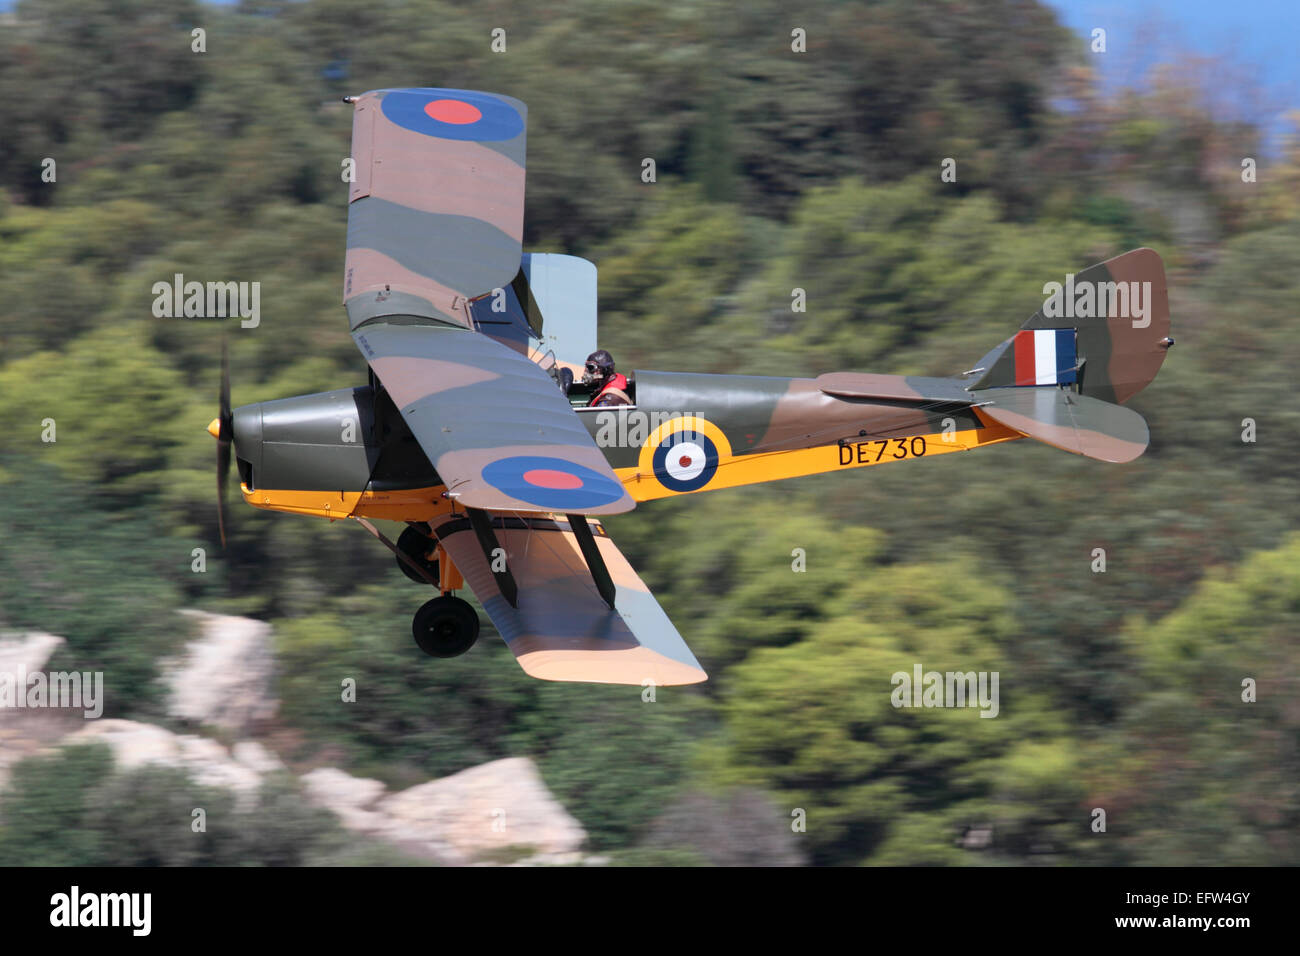 De Havilland Tiger Moth vintage biplane aircraft in the colours of a Royal Air Force World War 2 training plane - Stock Image